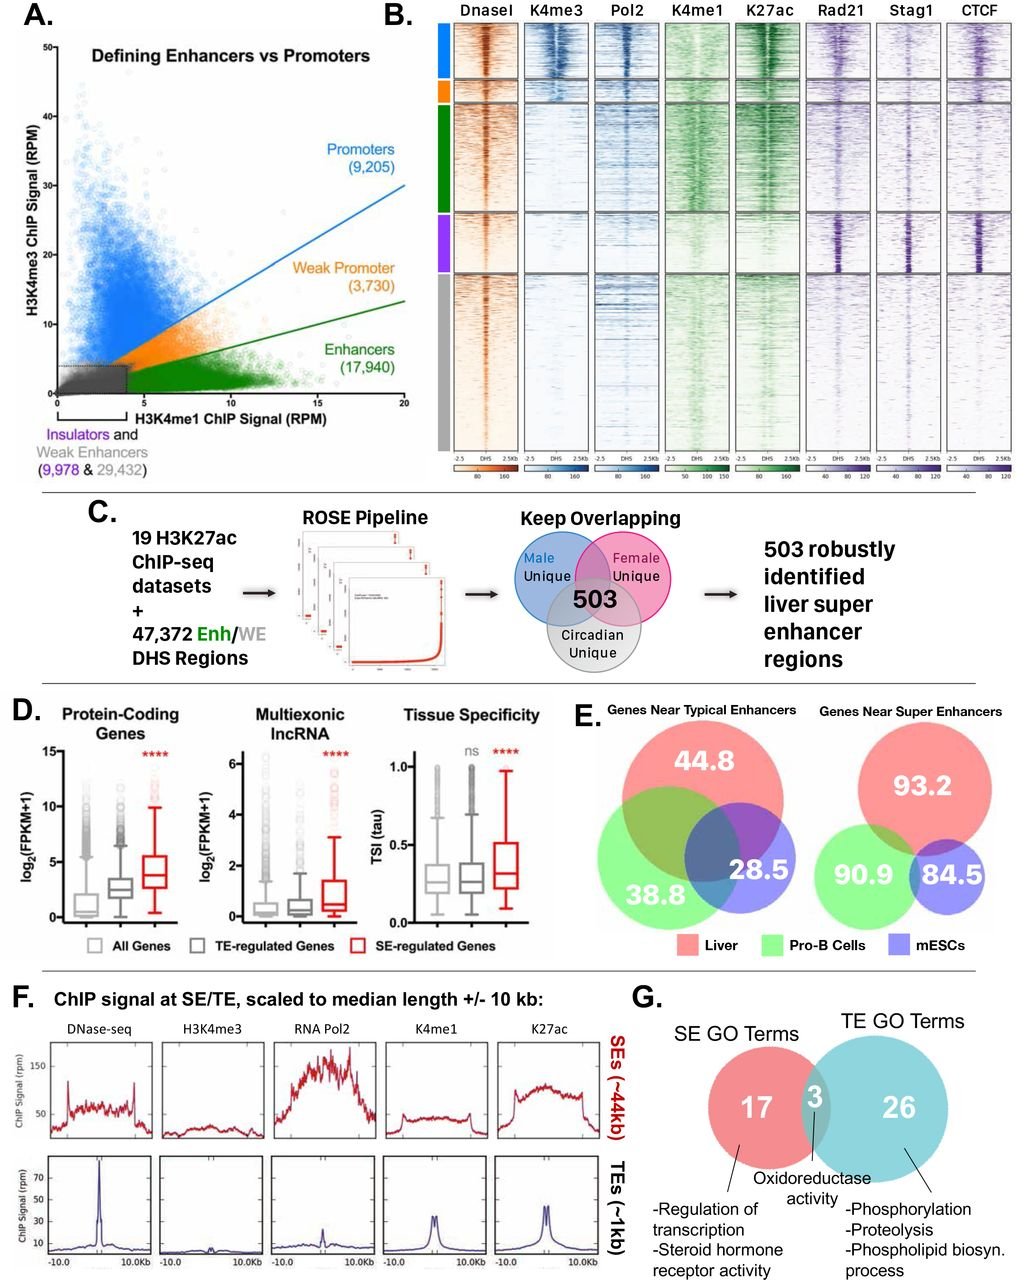 Insulation of gene expression by CTCF and cohesin-based subTAD